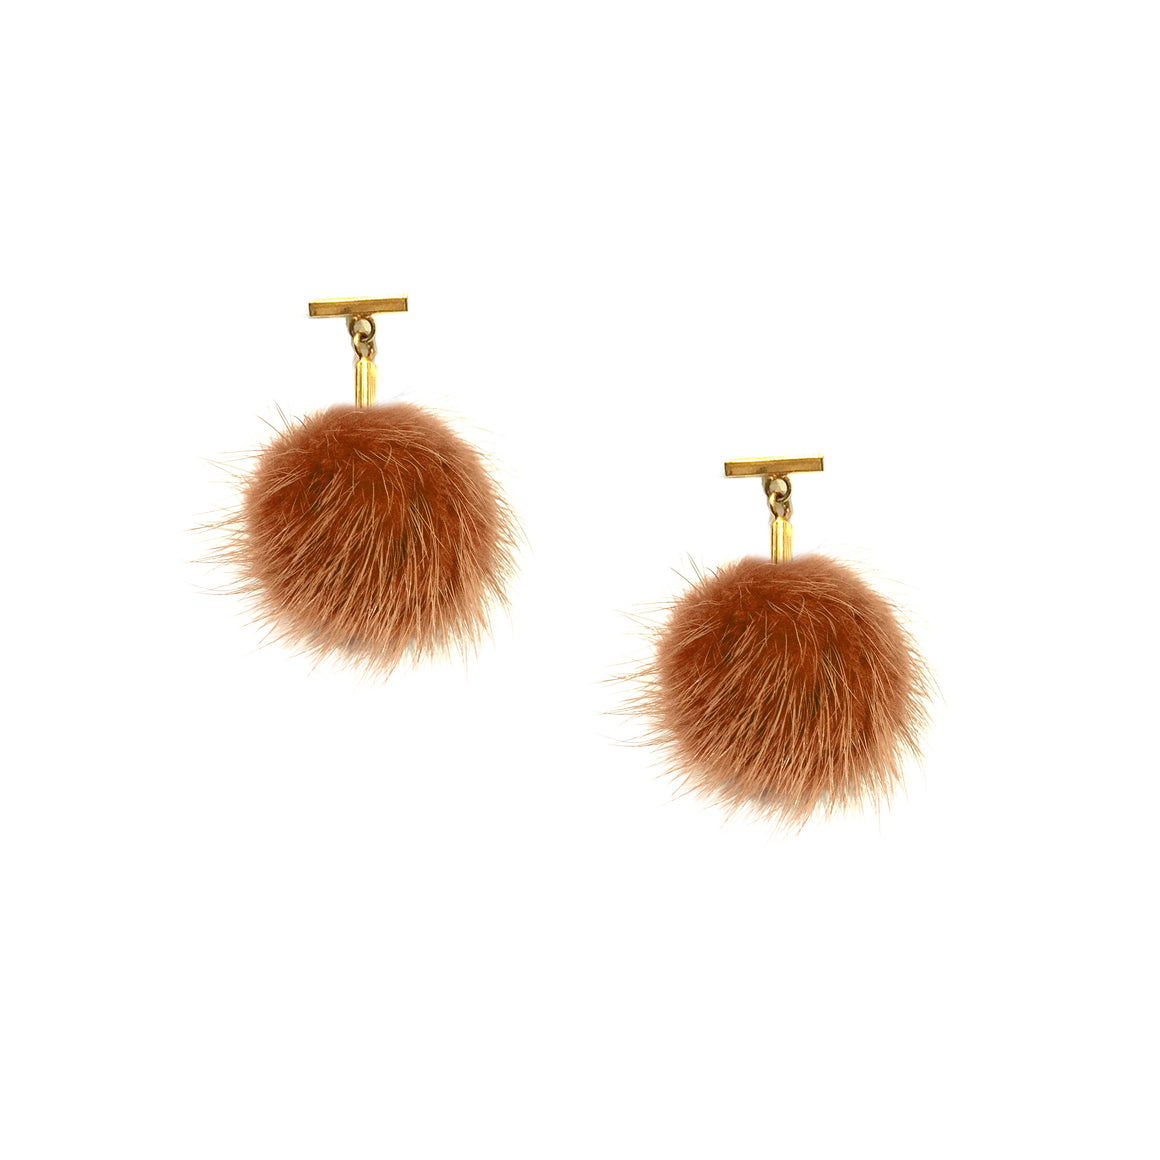 Rust Mini Mink Pom Pom T Stud Earrings, earring, Tuleste, Tuleste